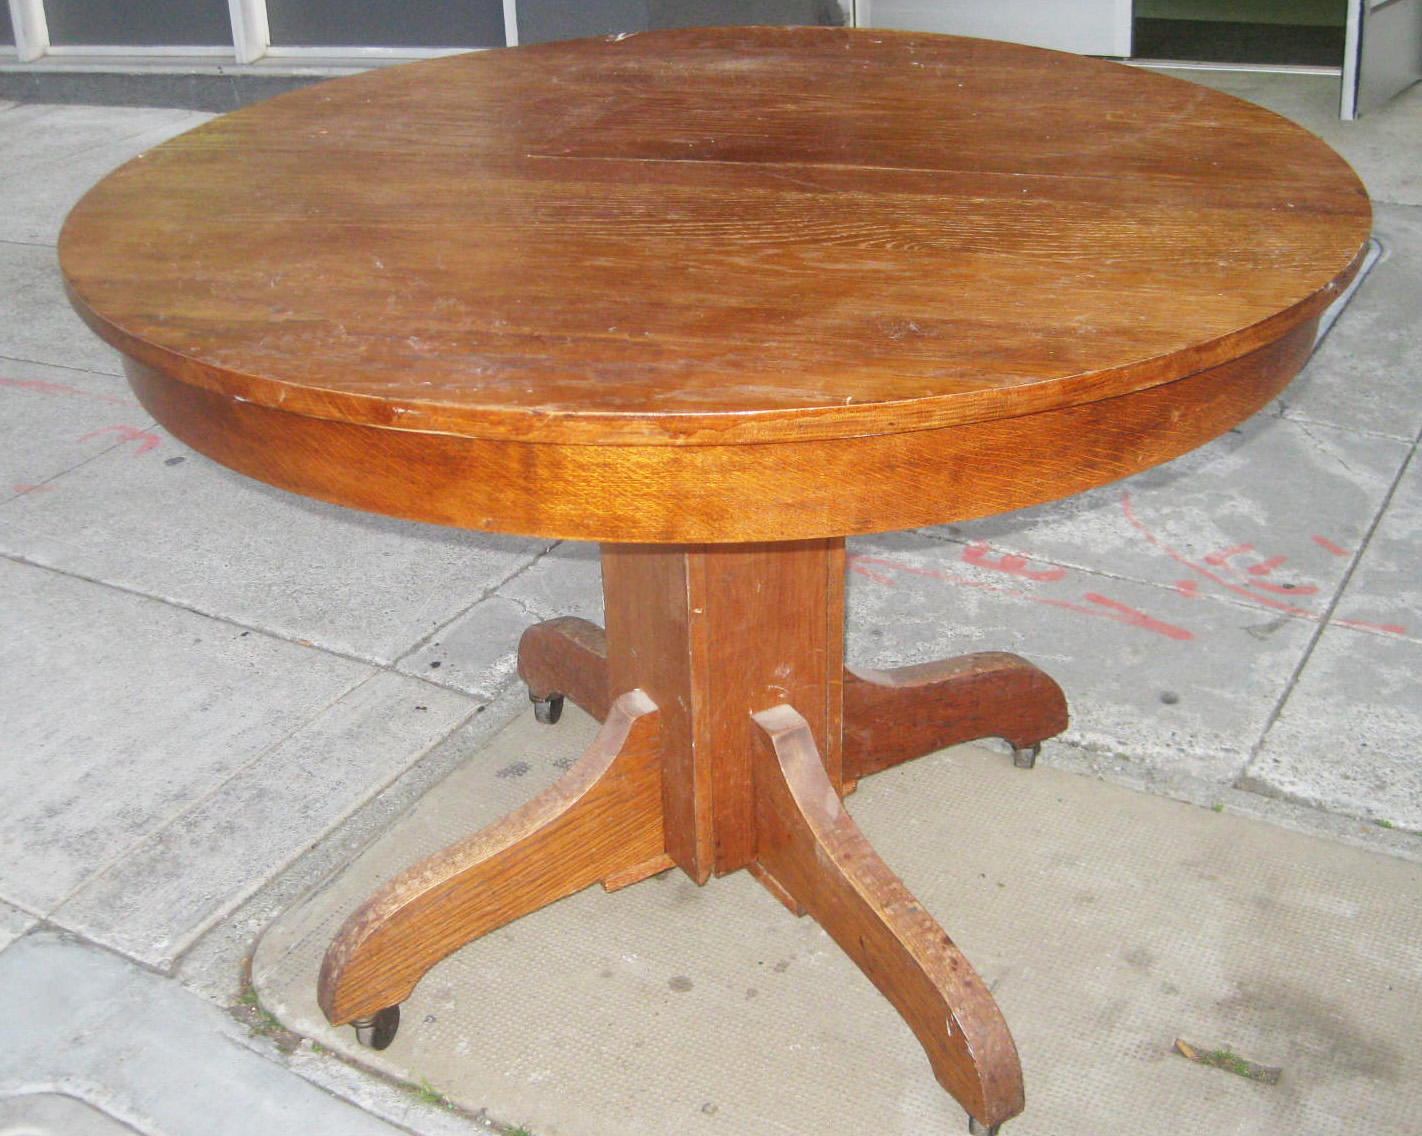 UHURU FURNITURE & COLLECTIBLES: SOLD - Craftsman Oak Dining Table